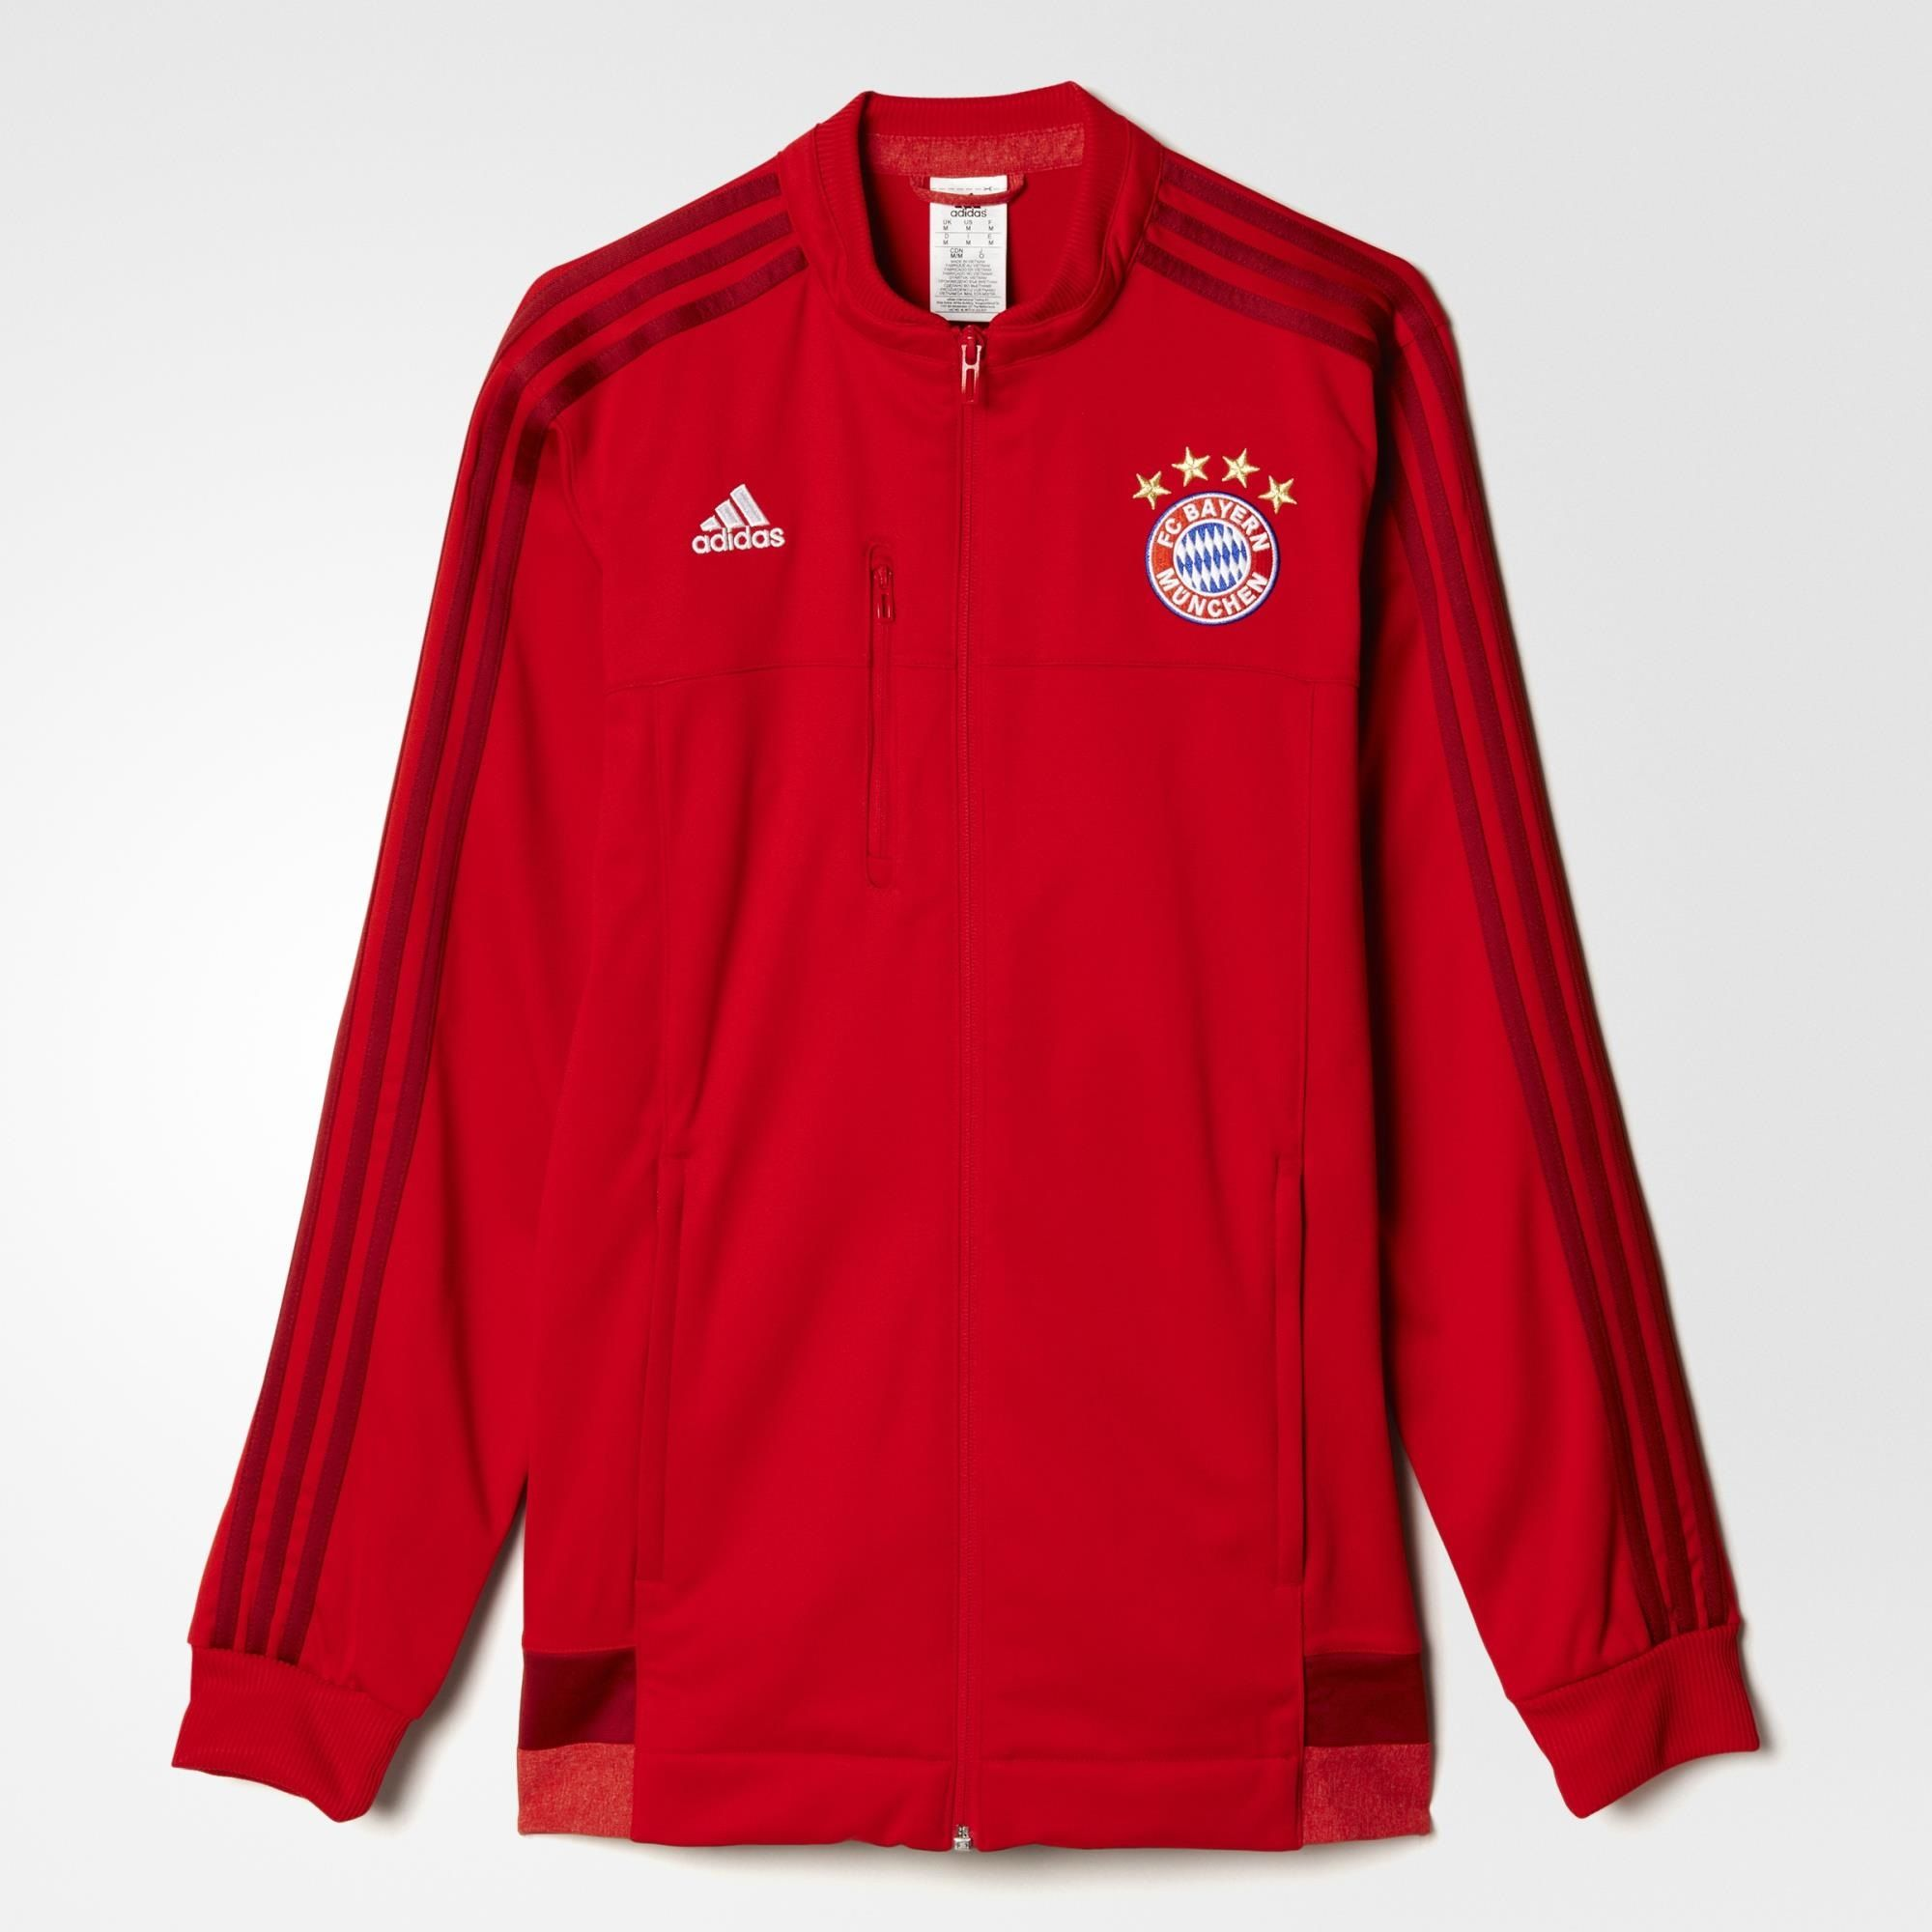 adidas herren jacke bayern m nchen anthem ebay. Black Bedroom Furniture Sets. Home Design Ideas